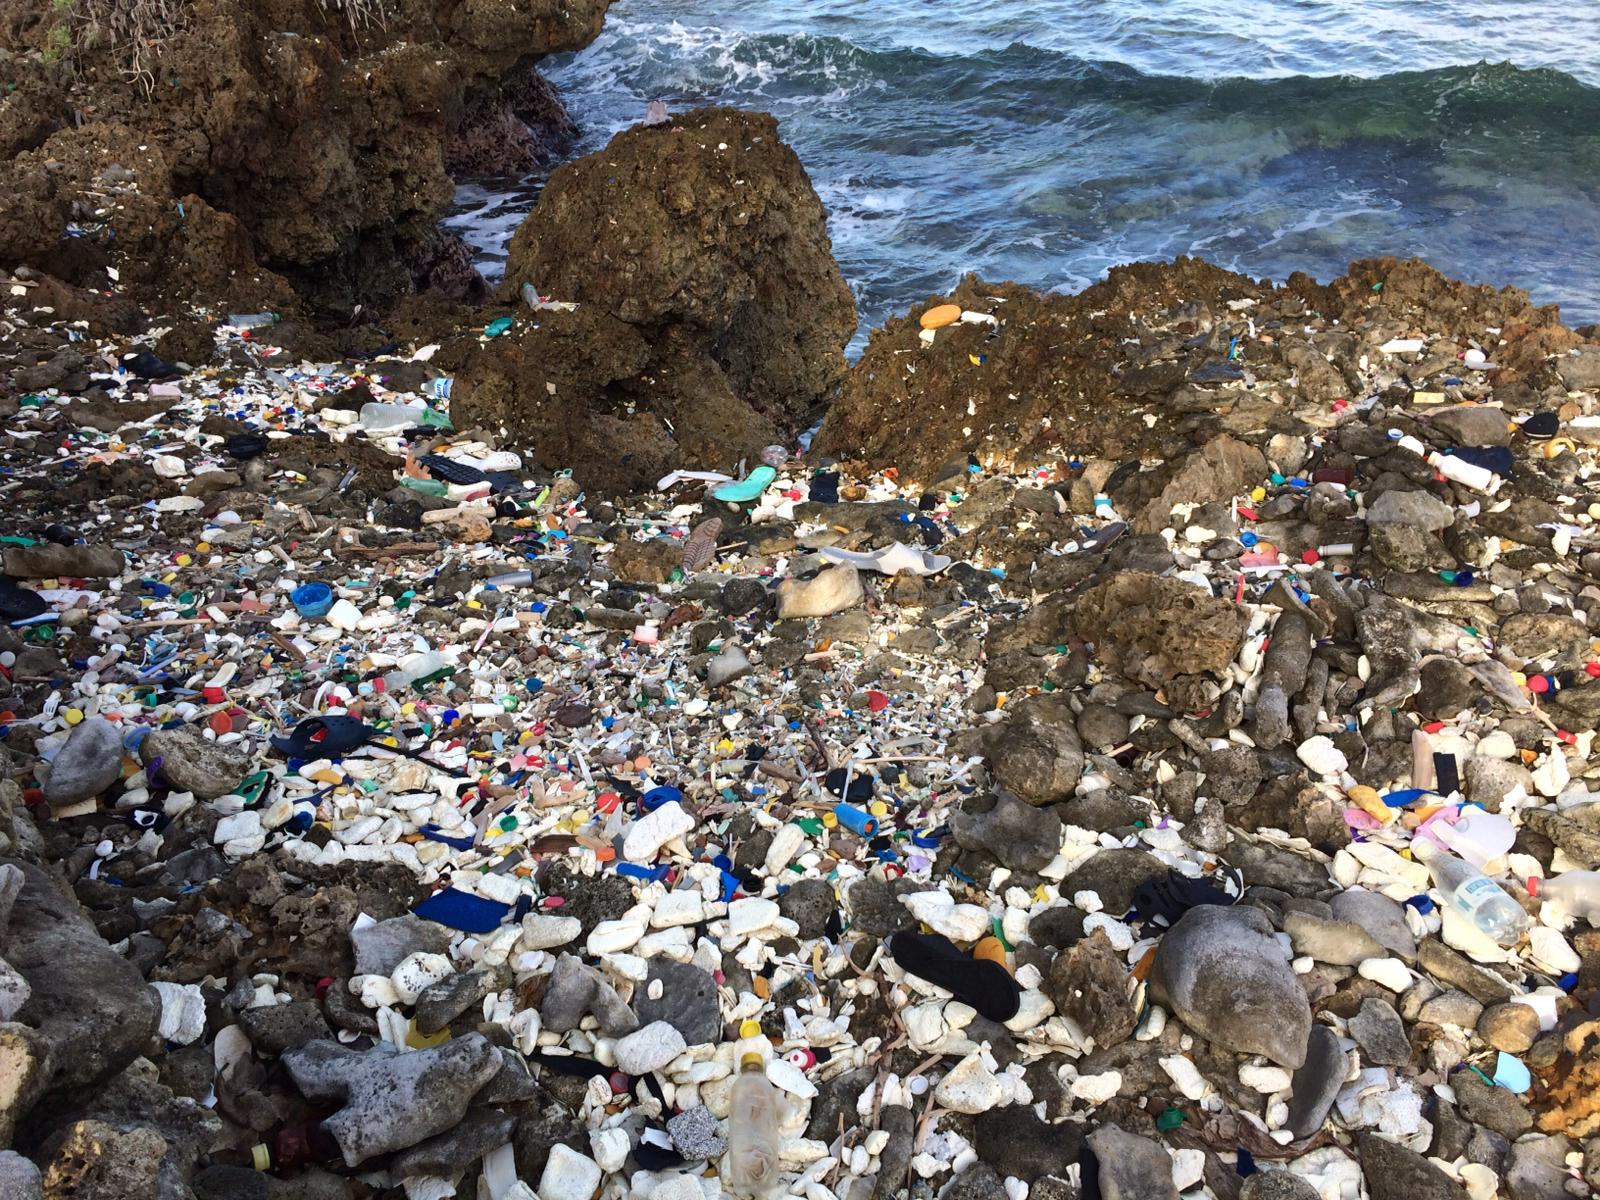 The Plastic Tide drones would be able to identify areas of high plastic pollution, such as this beach, using AI technology. Photo: Millie Rose